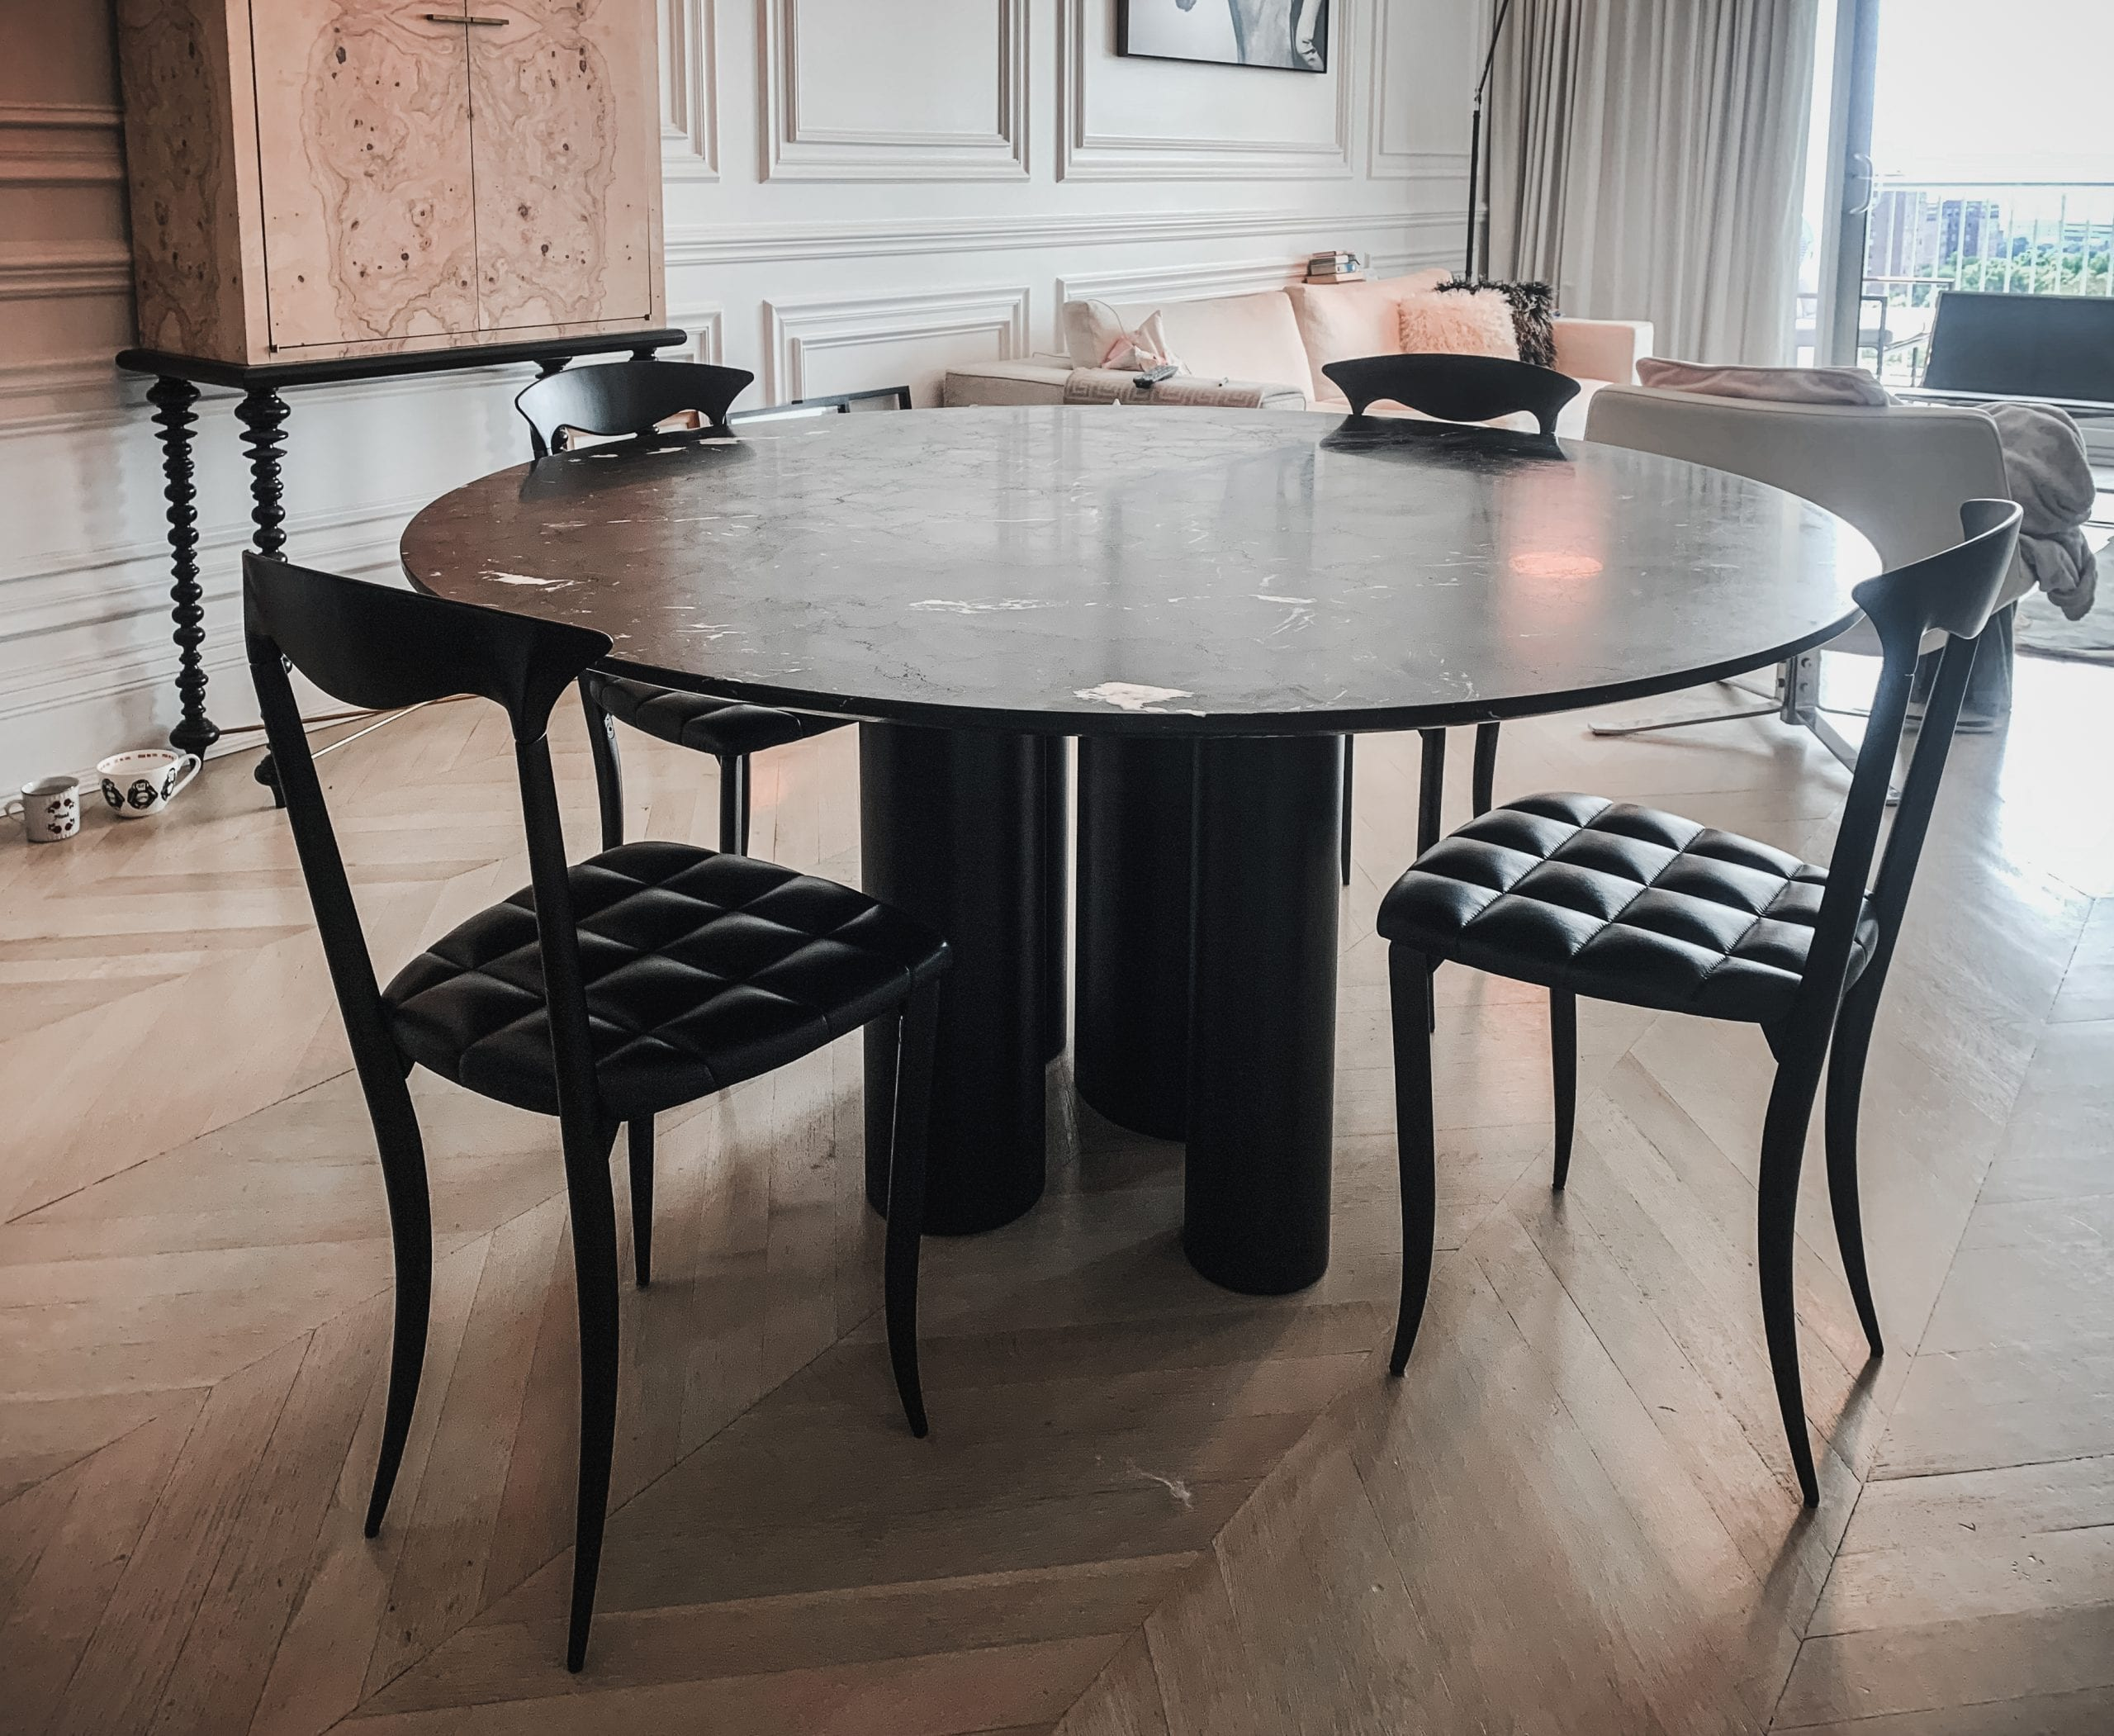 Marble and wood dining table with chairs